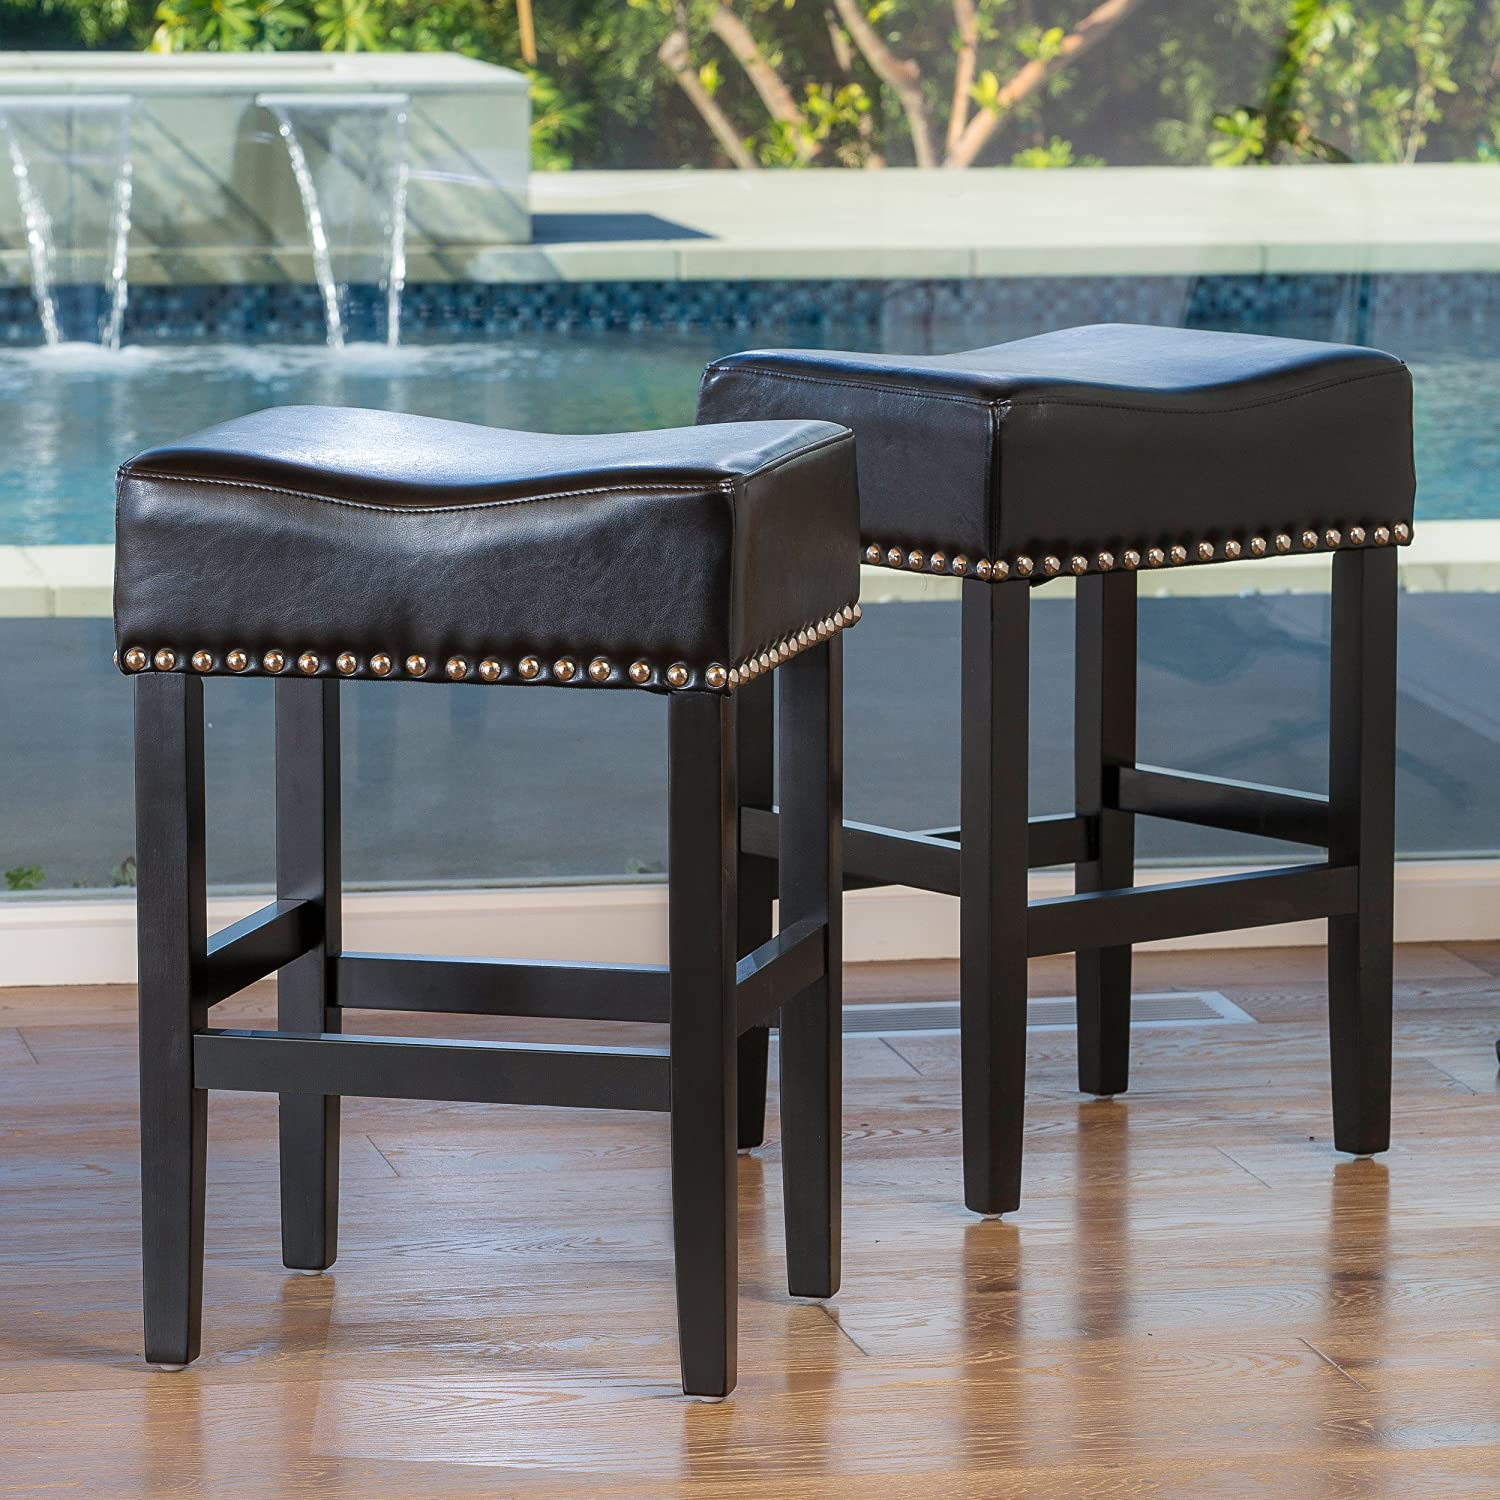 Amazon.com Best Selling Lennox Backless Leather Counter Stool Black Set of 2 Kitchen u0026 Dining & Amazon.com: Best Selling Lennox Backless Leather Counter Stool ... islam-shia.org